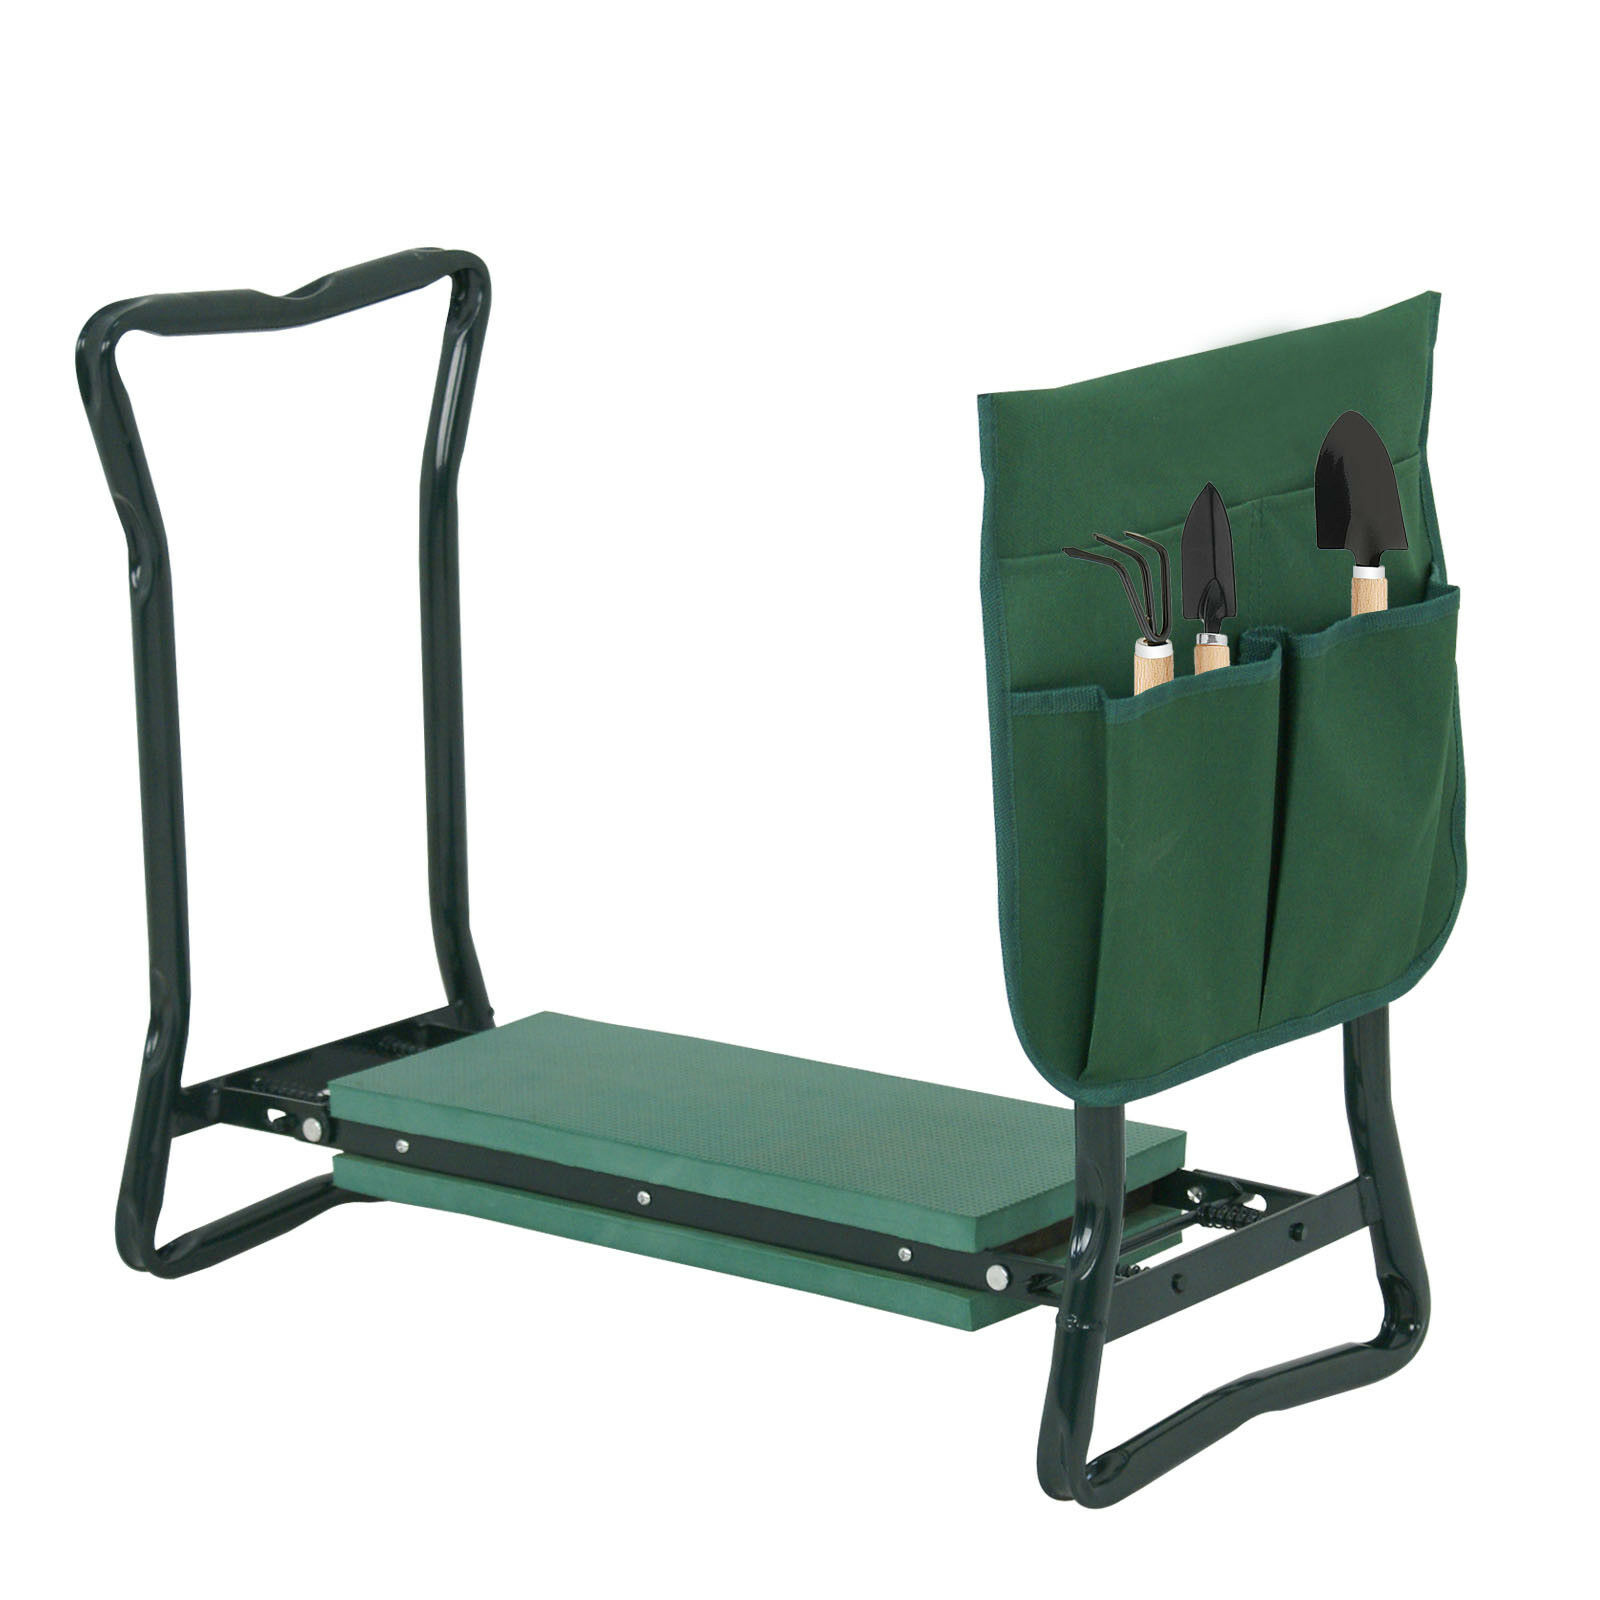 Marvelous Foldable Kneeler Garden Kneeling Bench Stool Soft Cushion Seat Pad W Tool Pouch Cjindustries Chair Design For Home Cjindustriesco